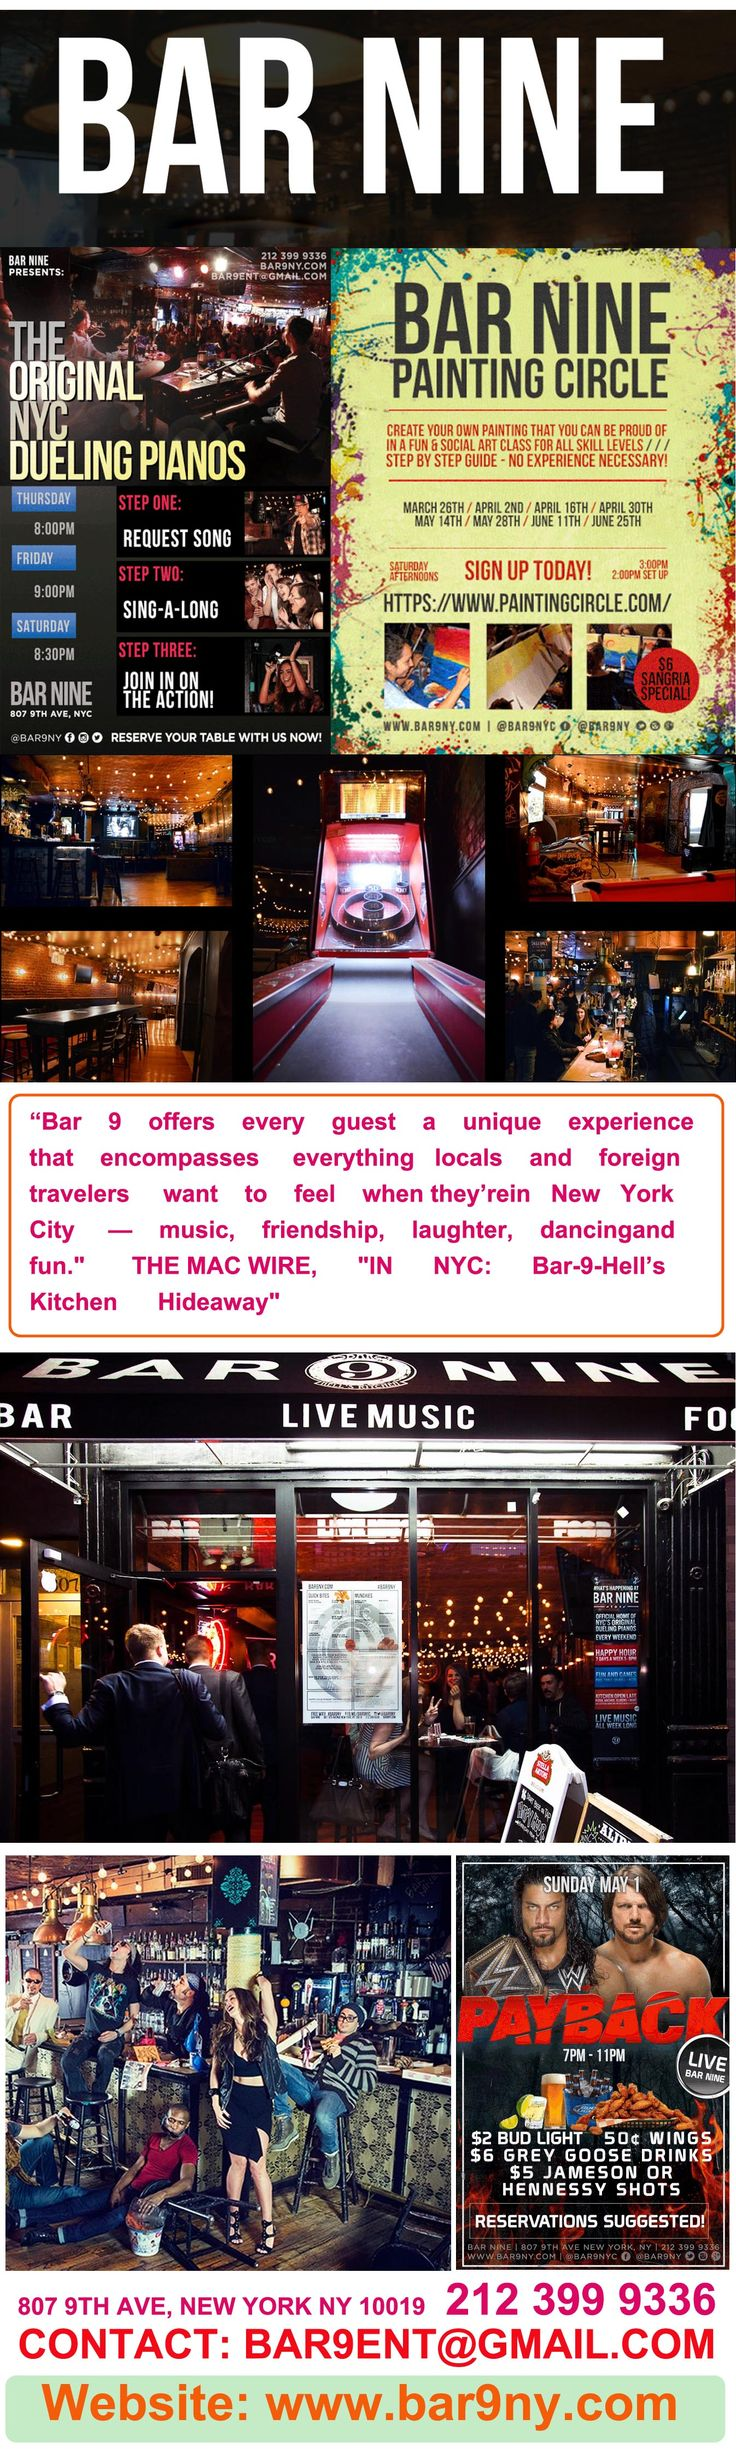 Are you in NYC and searching for a bar with live piano music? Your search ends here. Come at Bar 9 to enjoy live music show and request your favorite music to sing-a-long. We are one of the best piano bars in NYC, which is known for our quality service and awesome hospitality. Our A-list talent will have you dancing, laughing and singing along to your favorite hits of all time. For more information regarding our pianos show, visit bar9ny.com.